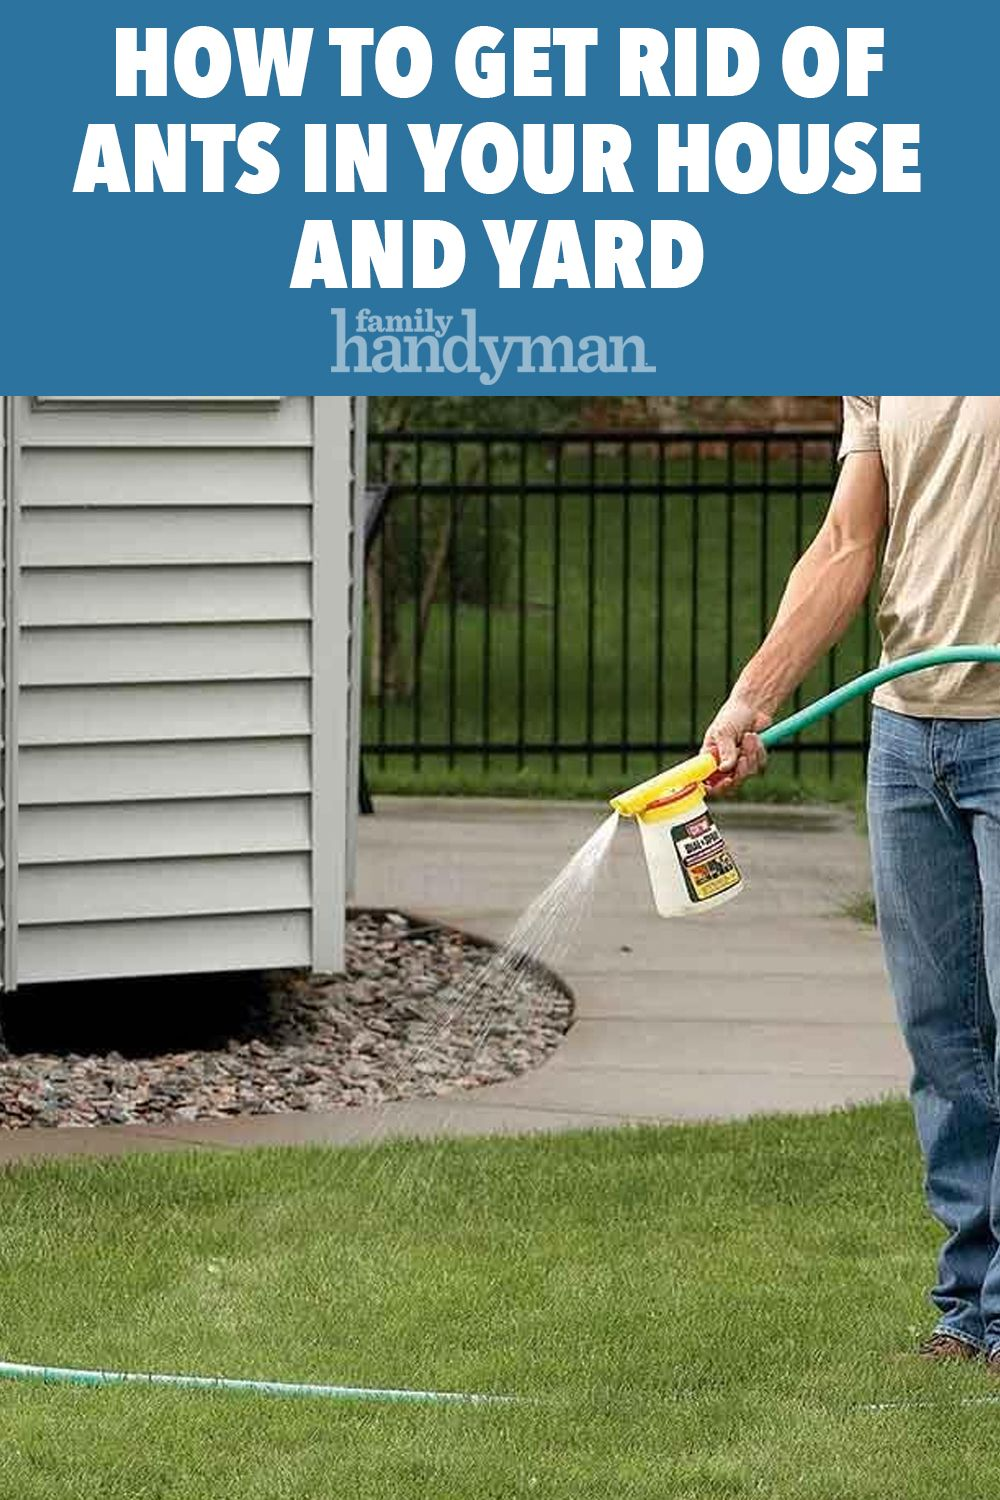 How to get rid of ants in your house and yard in 2020